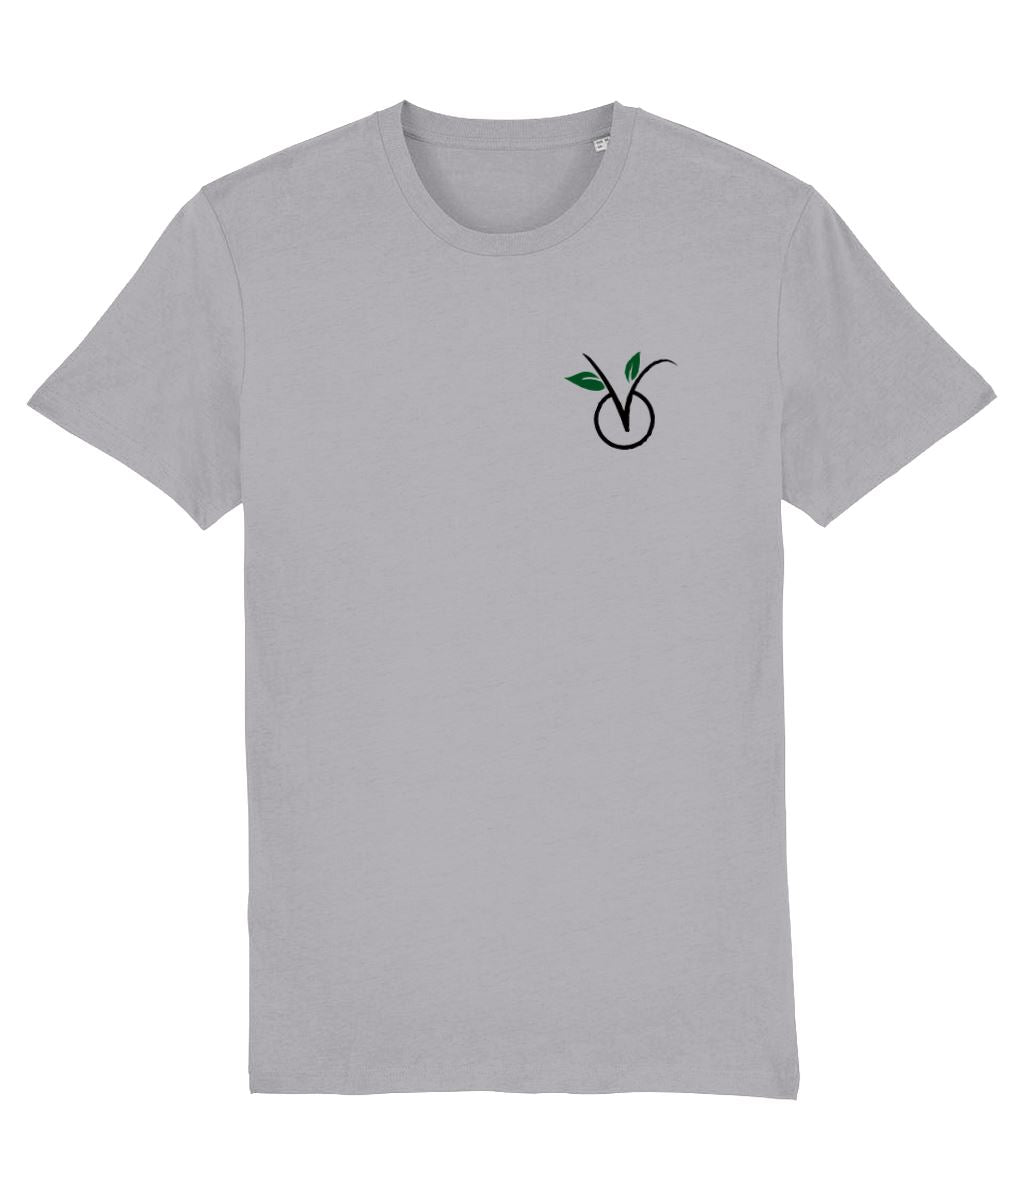 """V"" Vegan Light T-Shirt - 100% Organic Cotton (Unisex) Clothing Vegan Original Mid Heather Grey XX-Small"